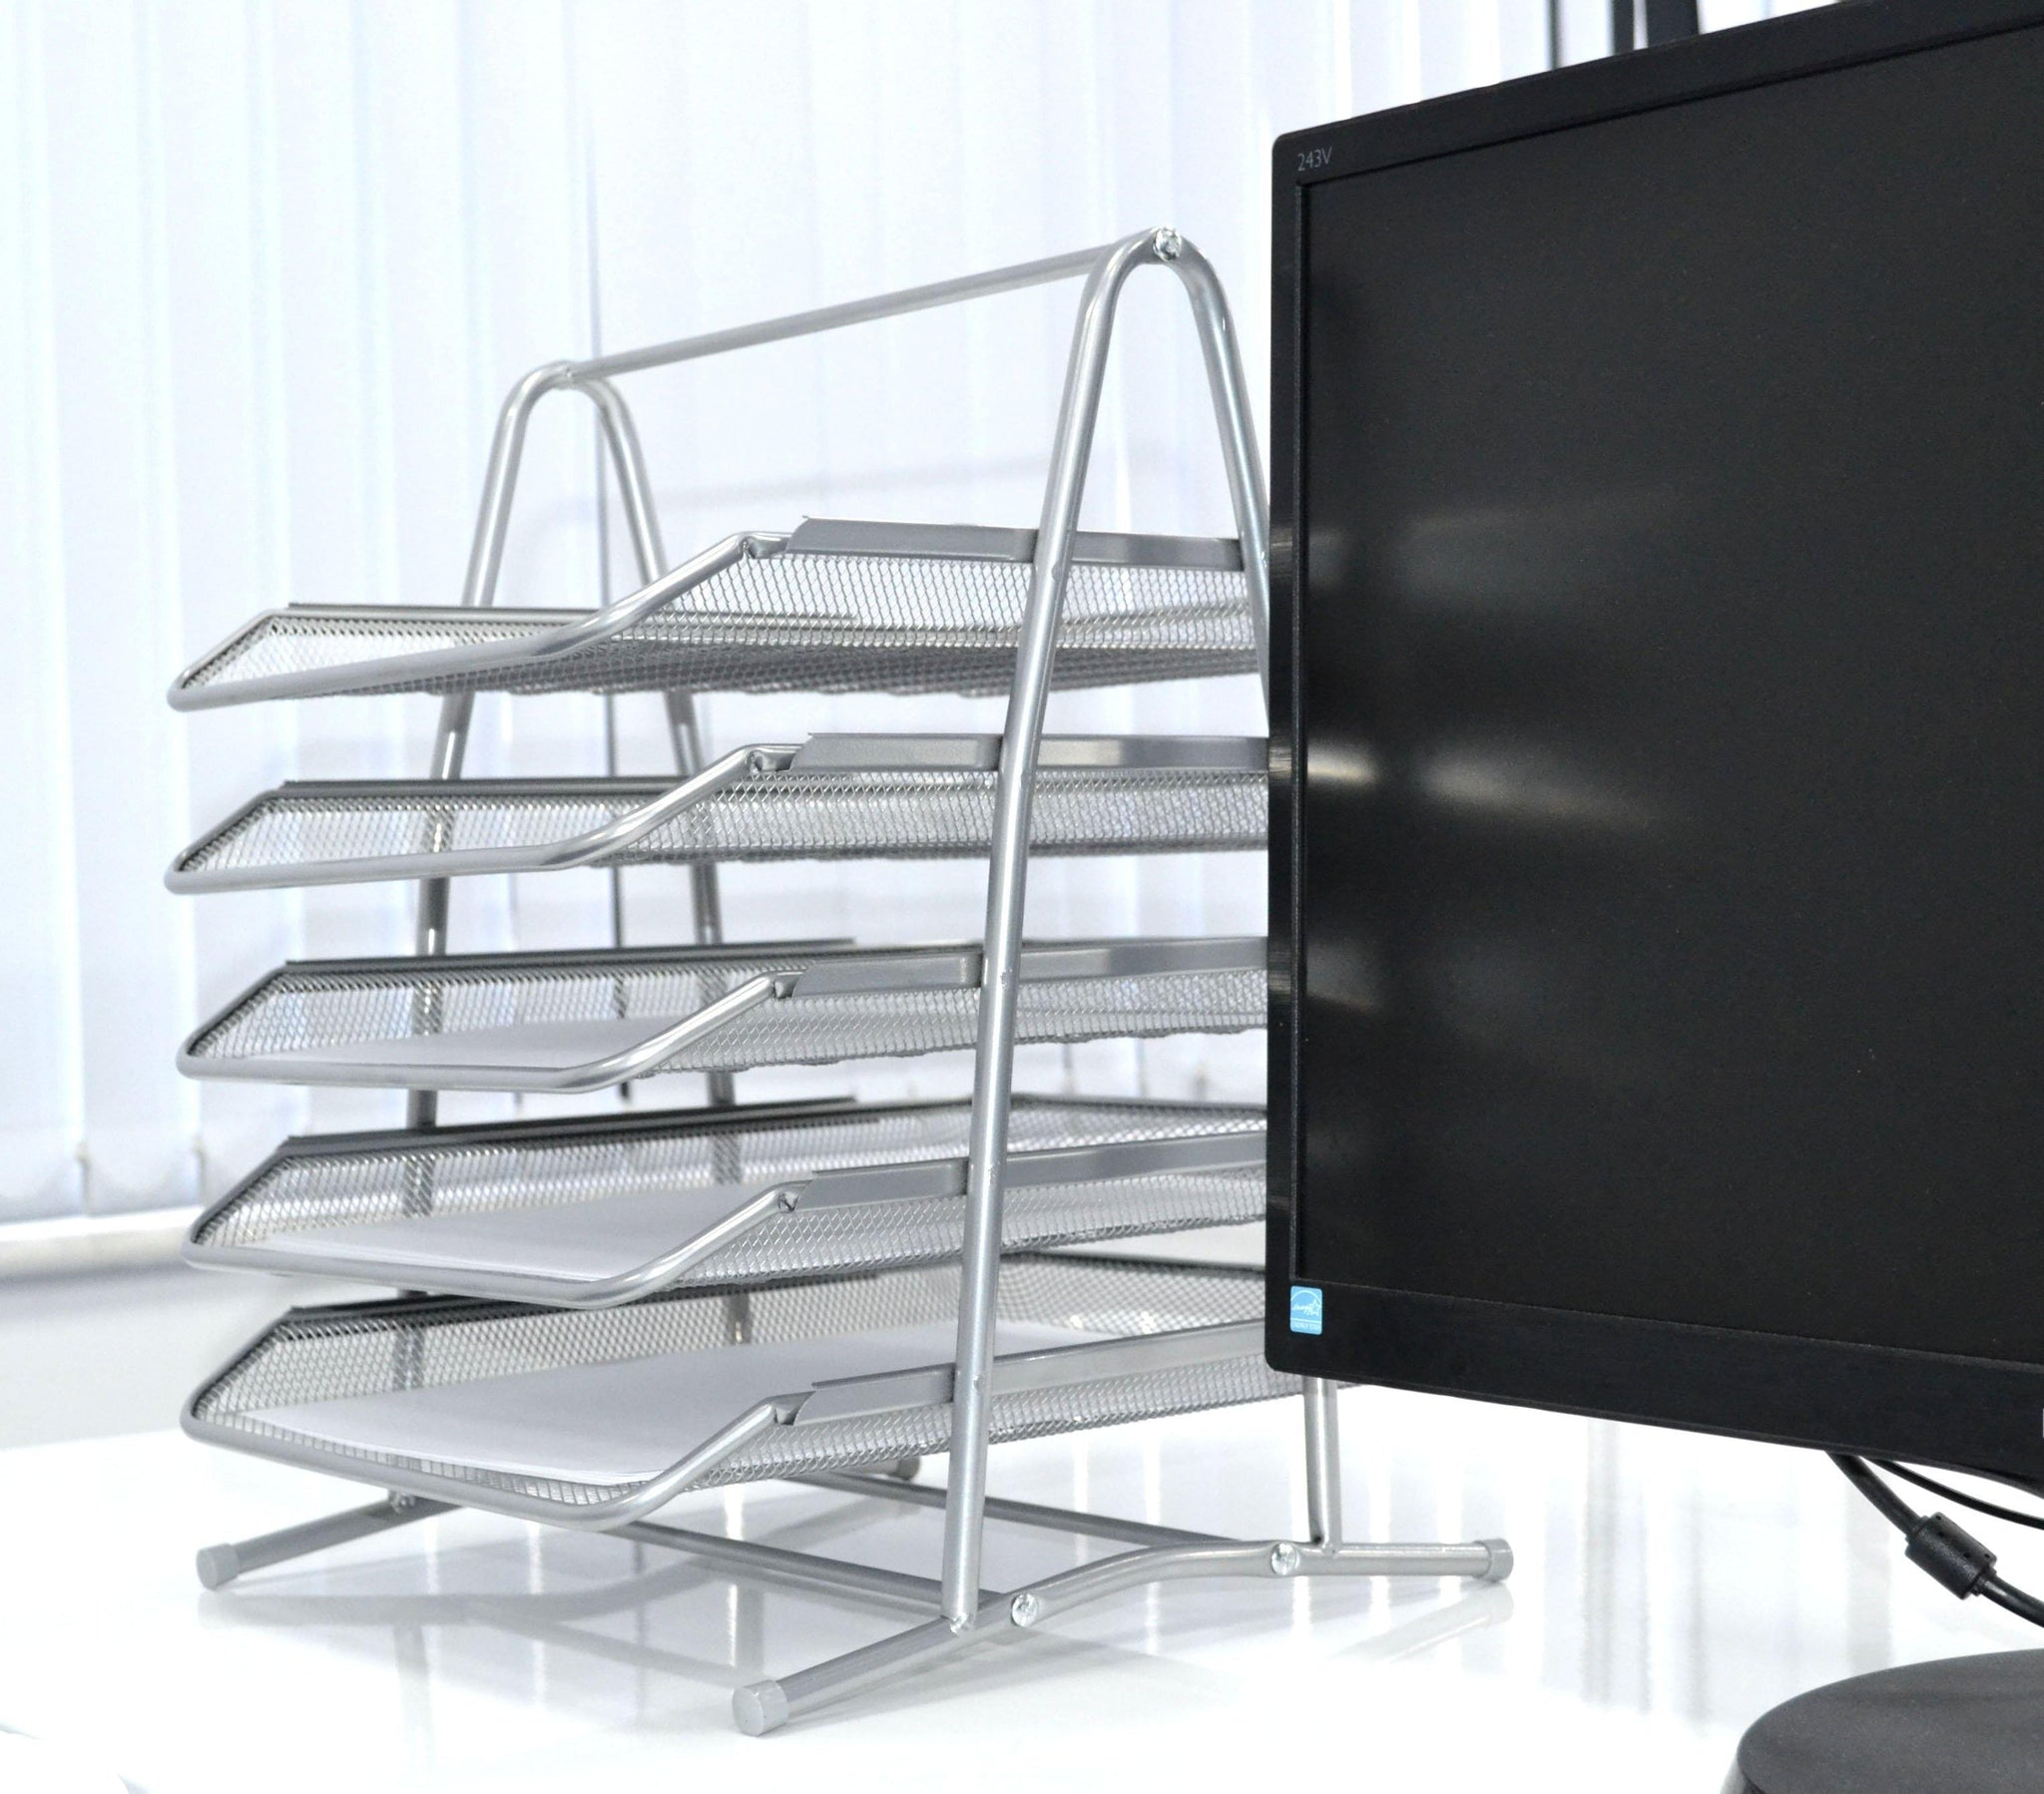 5 Tier Office Filing Trays Holder A4 Document Letter Paper Wire Mesh Storage